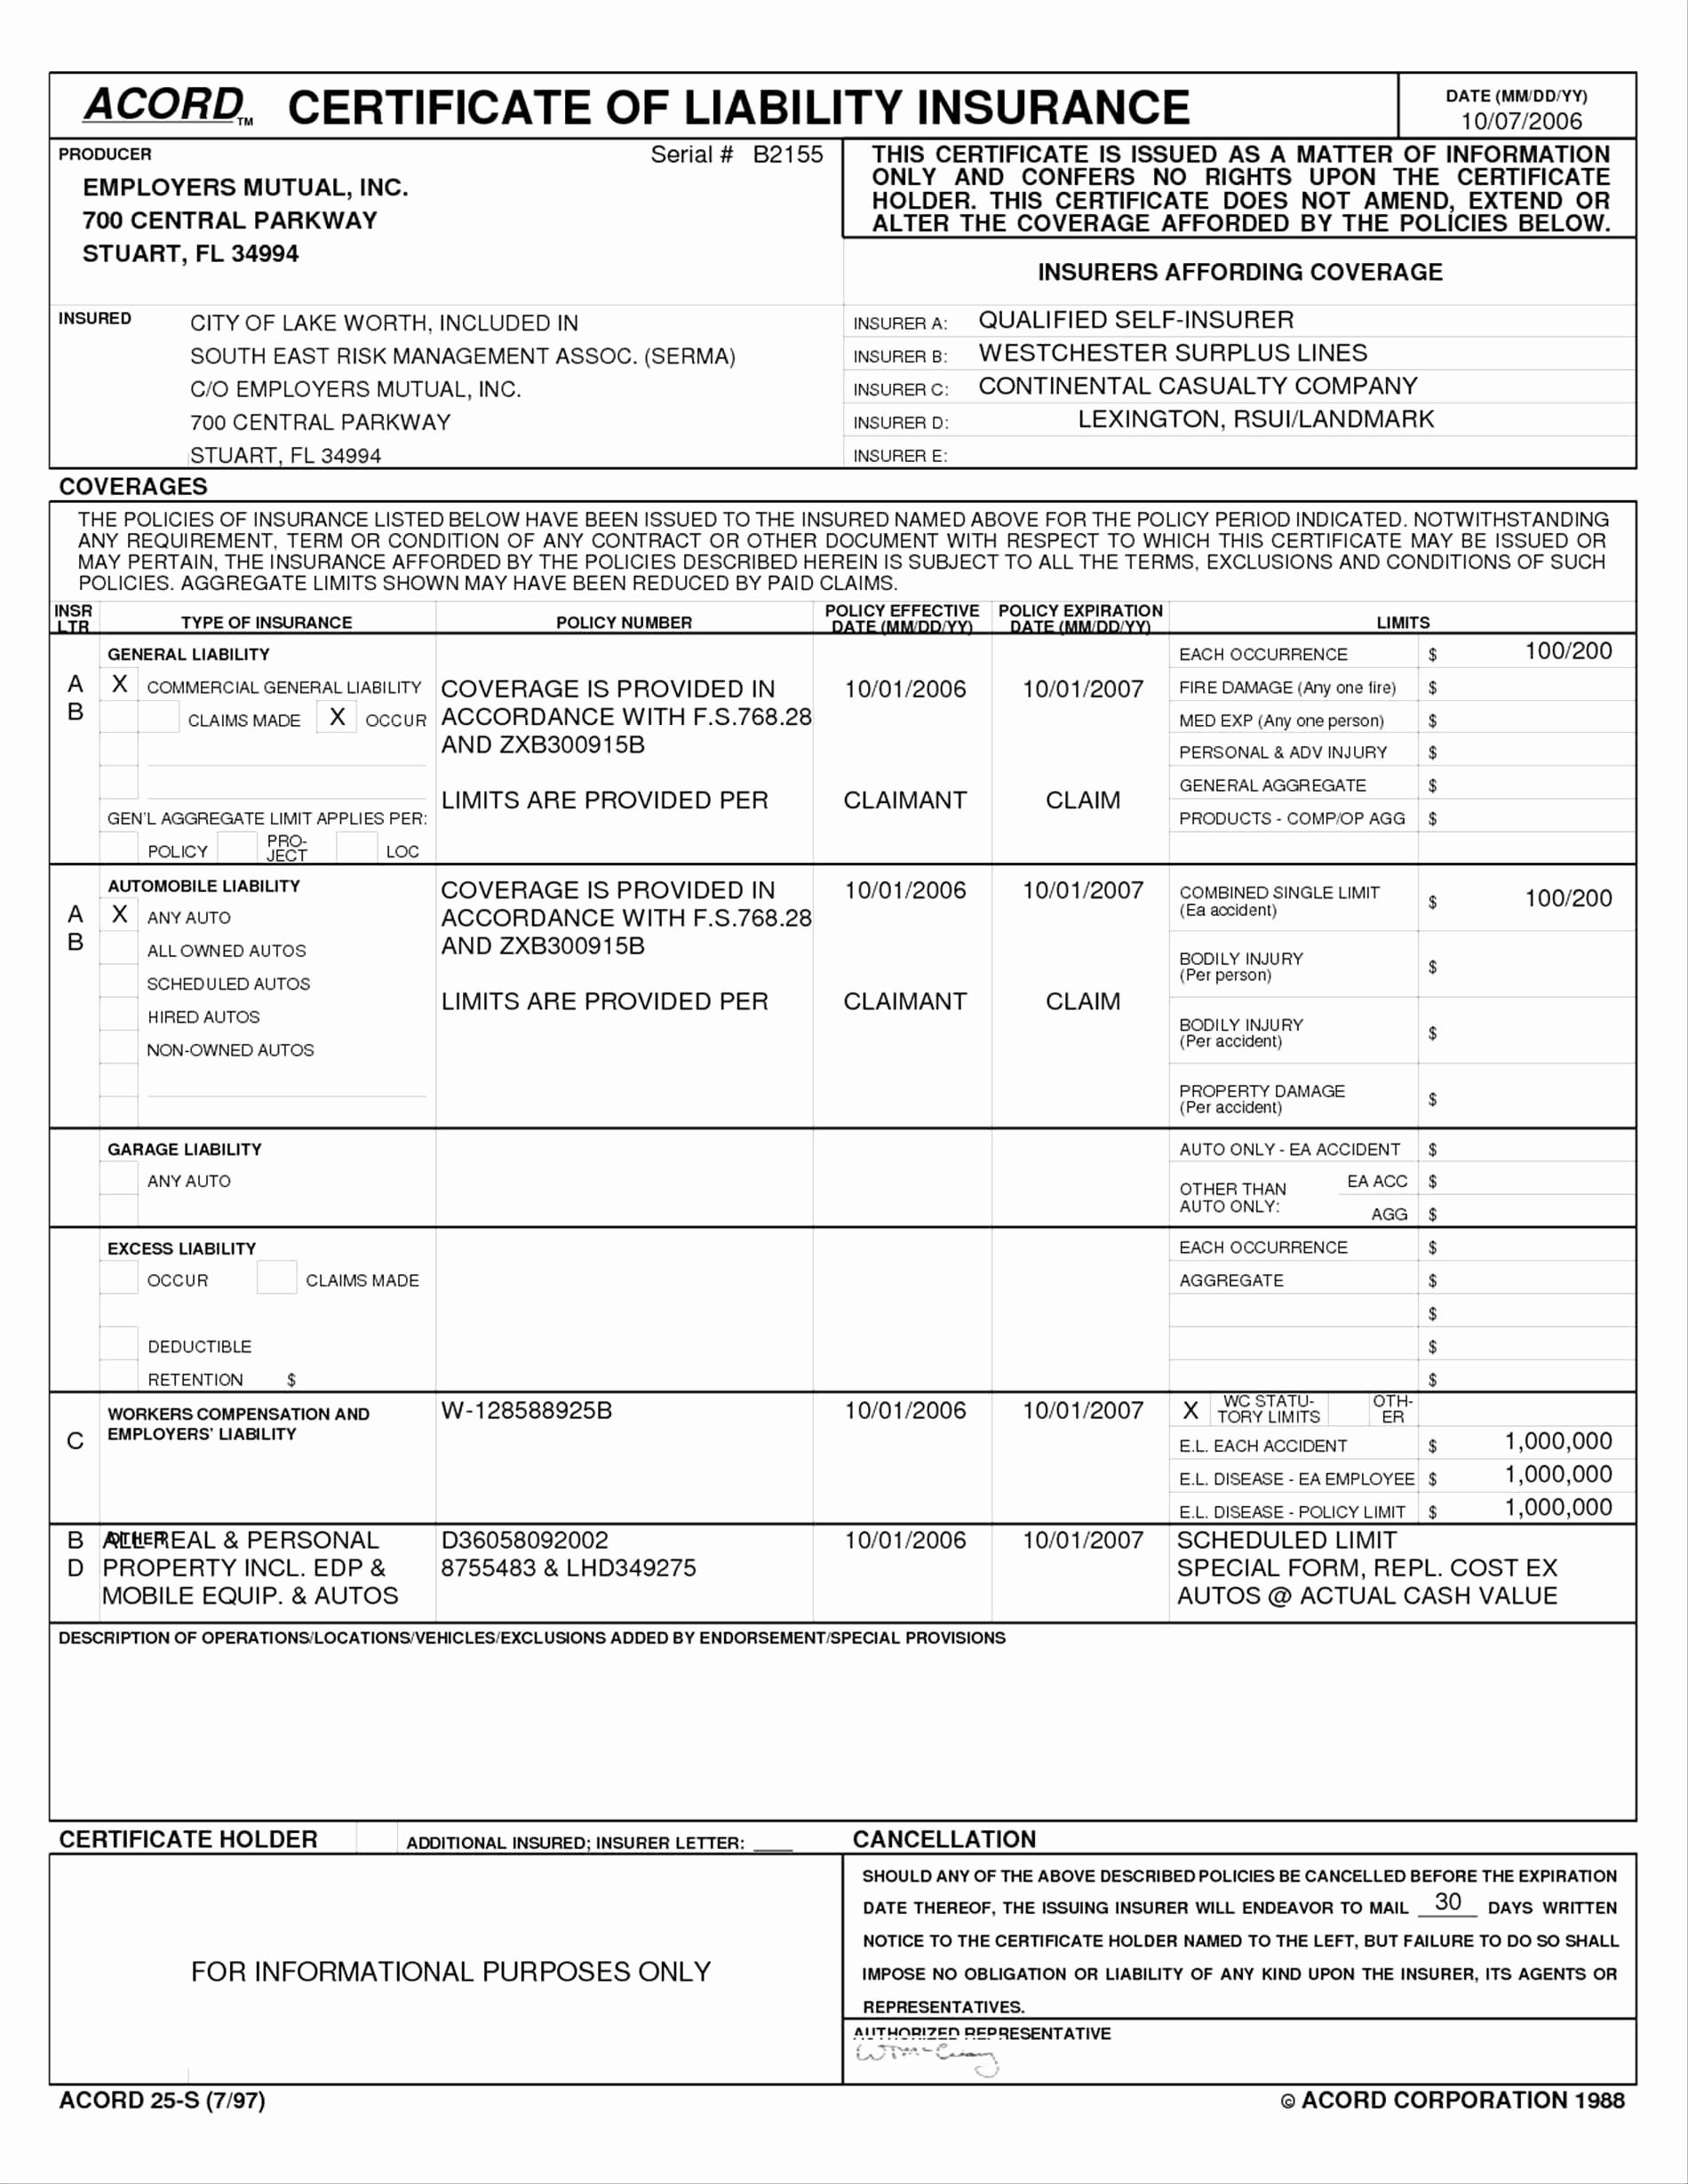 Fillable Acord Form 24